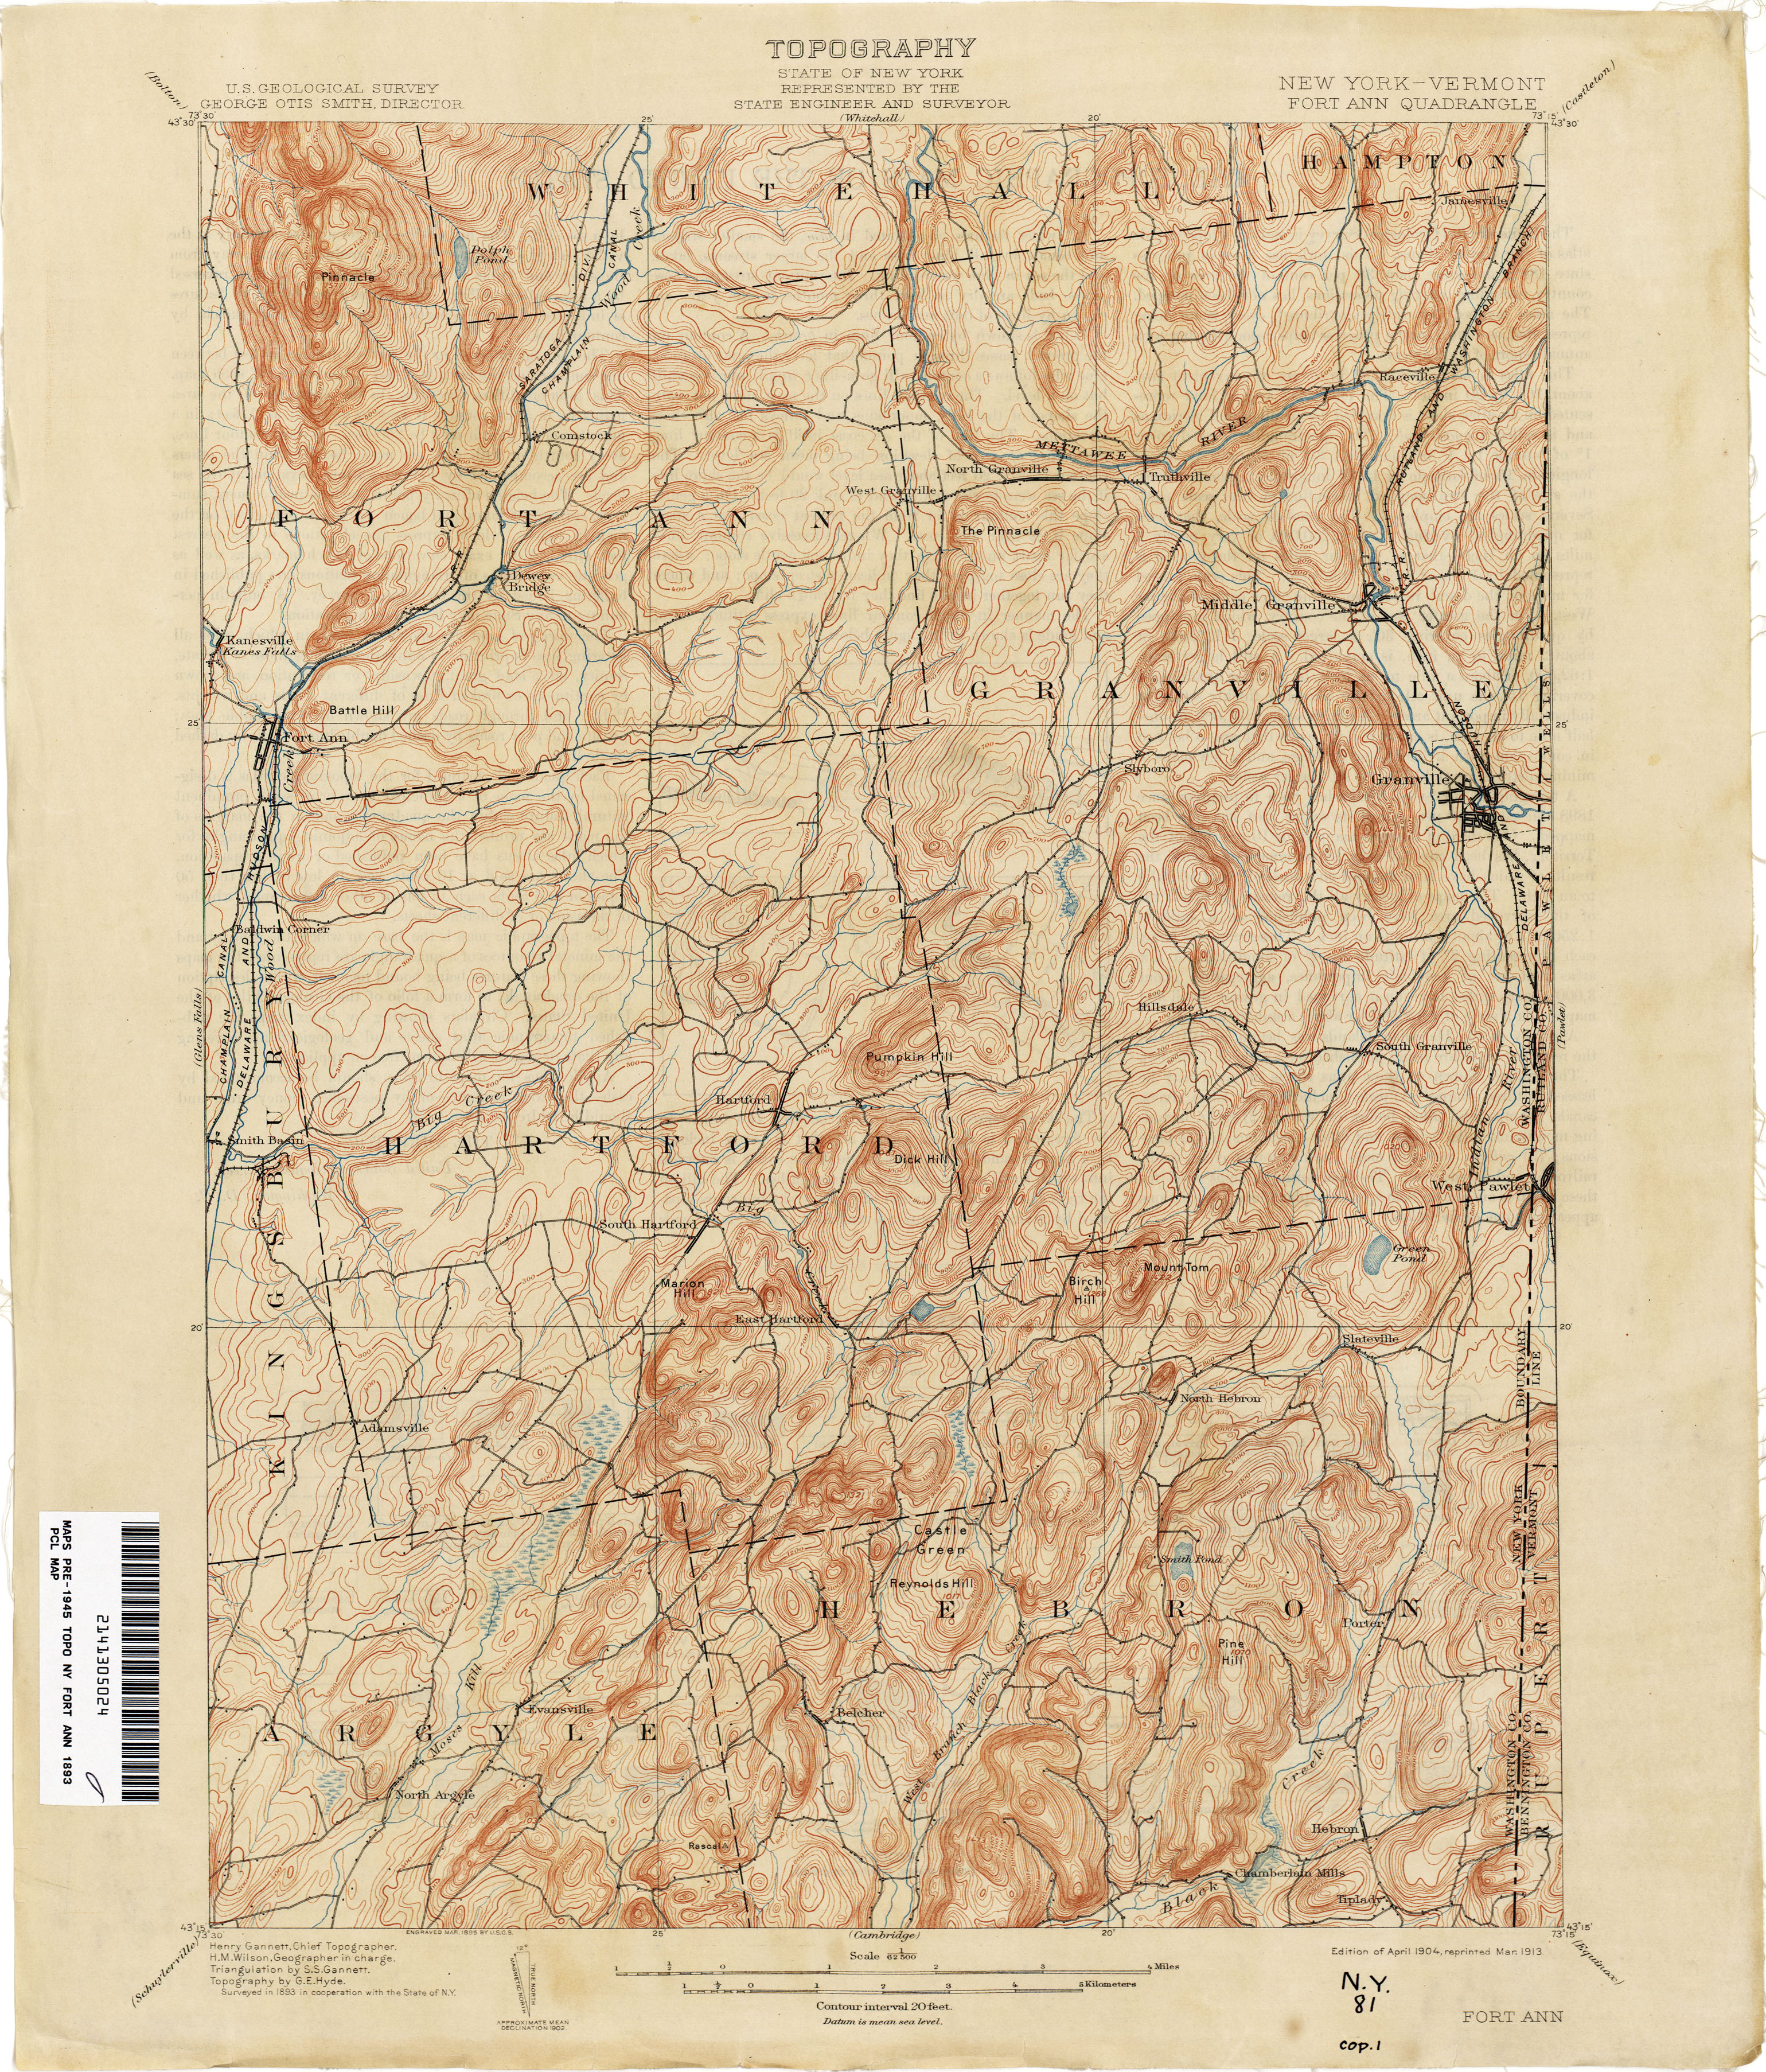 Vermont Historical Topographic Maps Perry Castaneda Map Collection